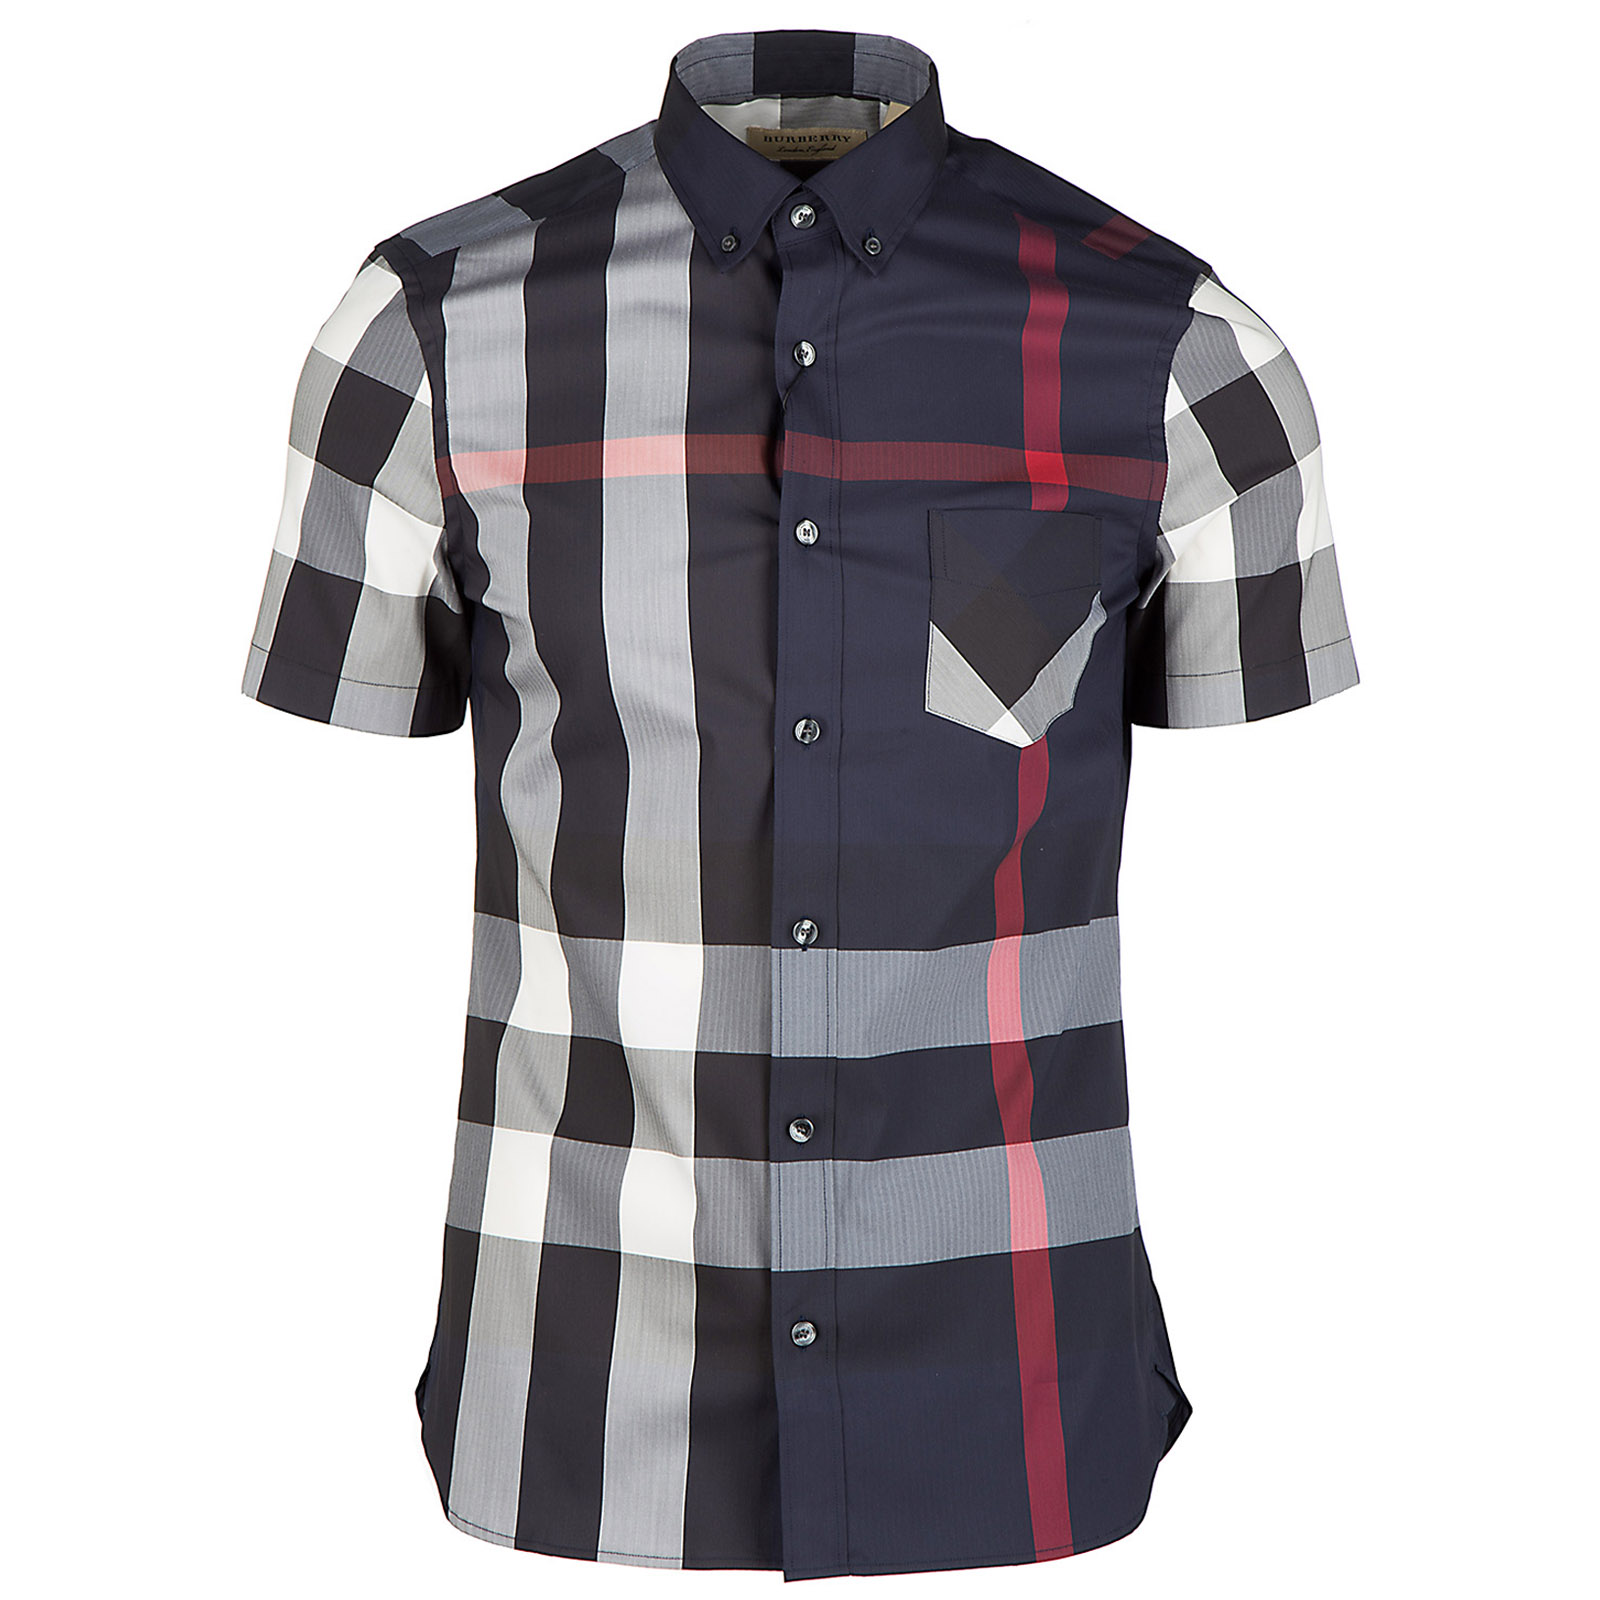 Do Burberry Mens Shirts Run Small Joe Maloy